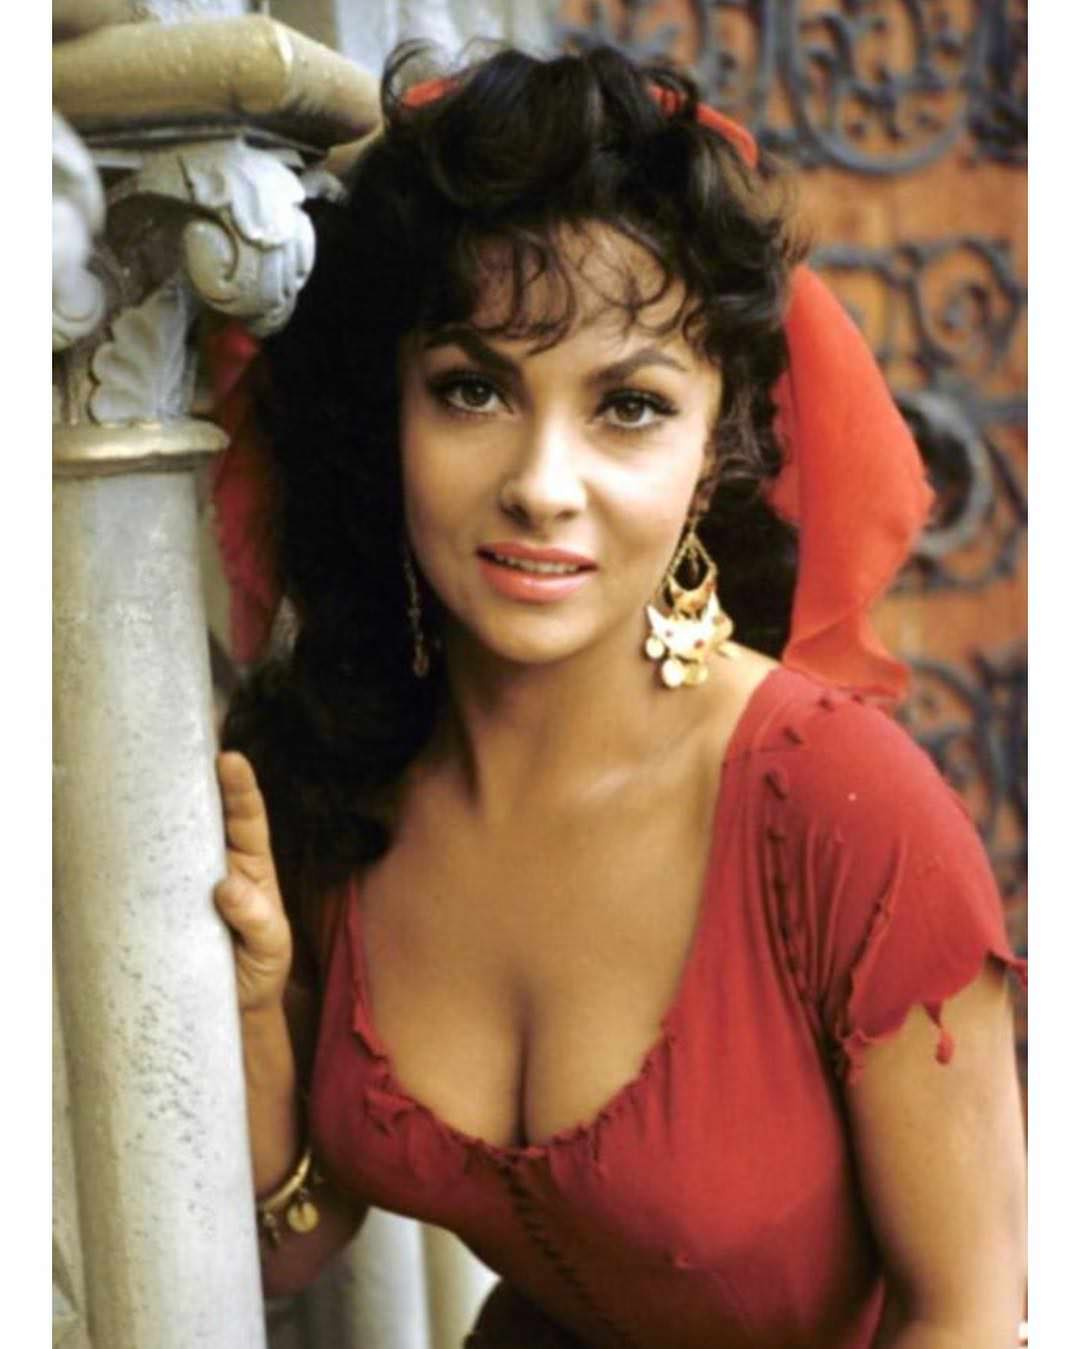 a scene from The Hunchback of Notre Dame (1956). Gina Lollobrigida